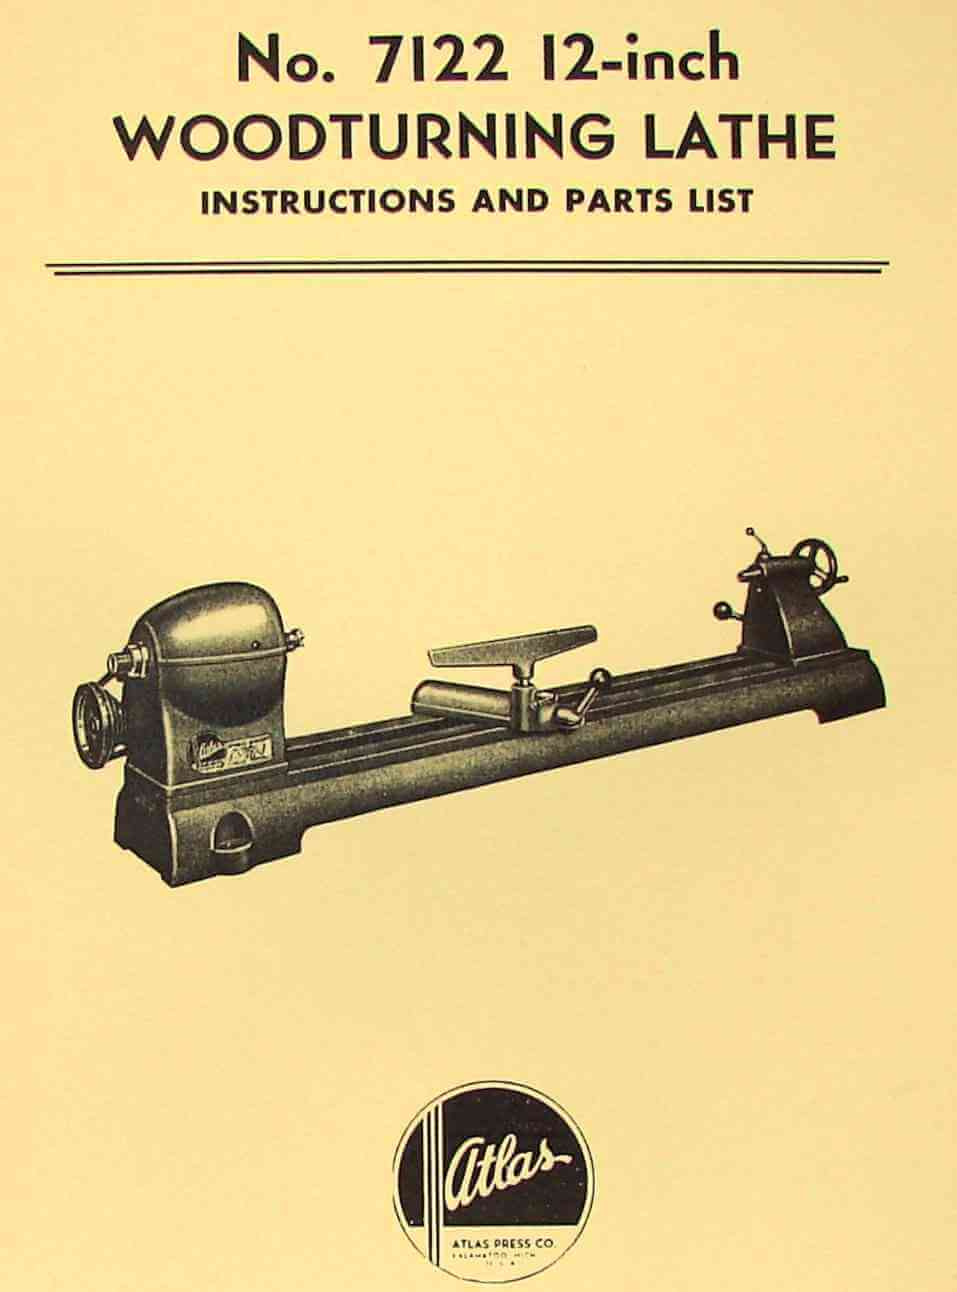 Instruction Manual How to write samsung Tv Series 7